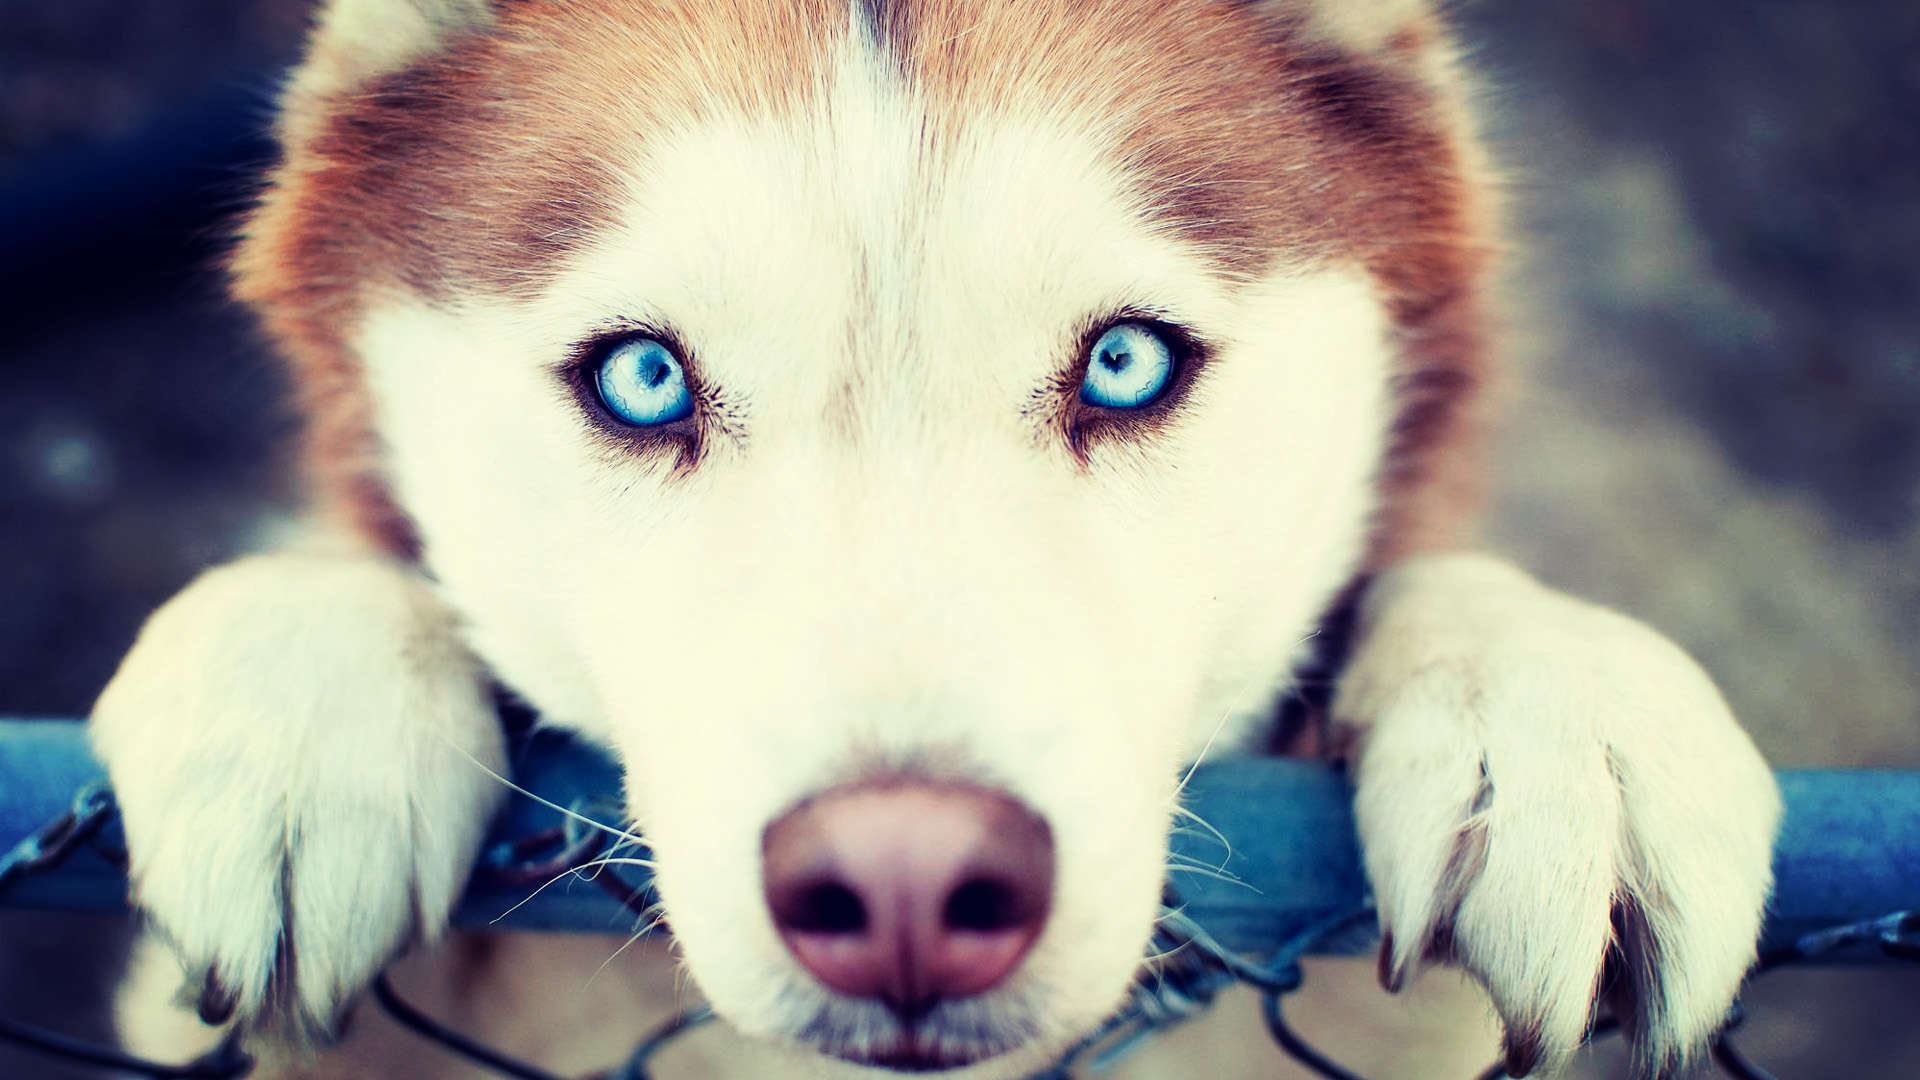 download adorable siberian husky 20781 1920x1080 px high